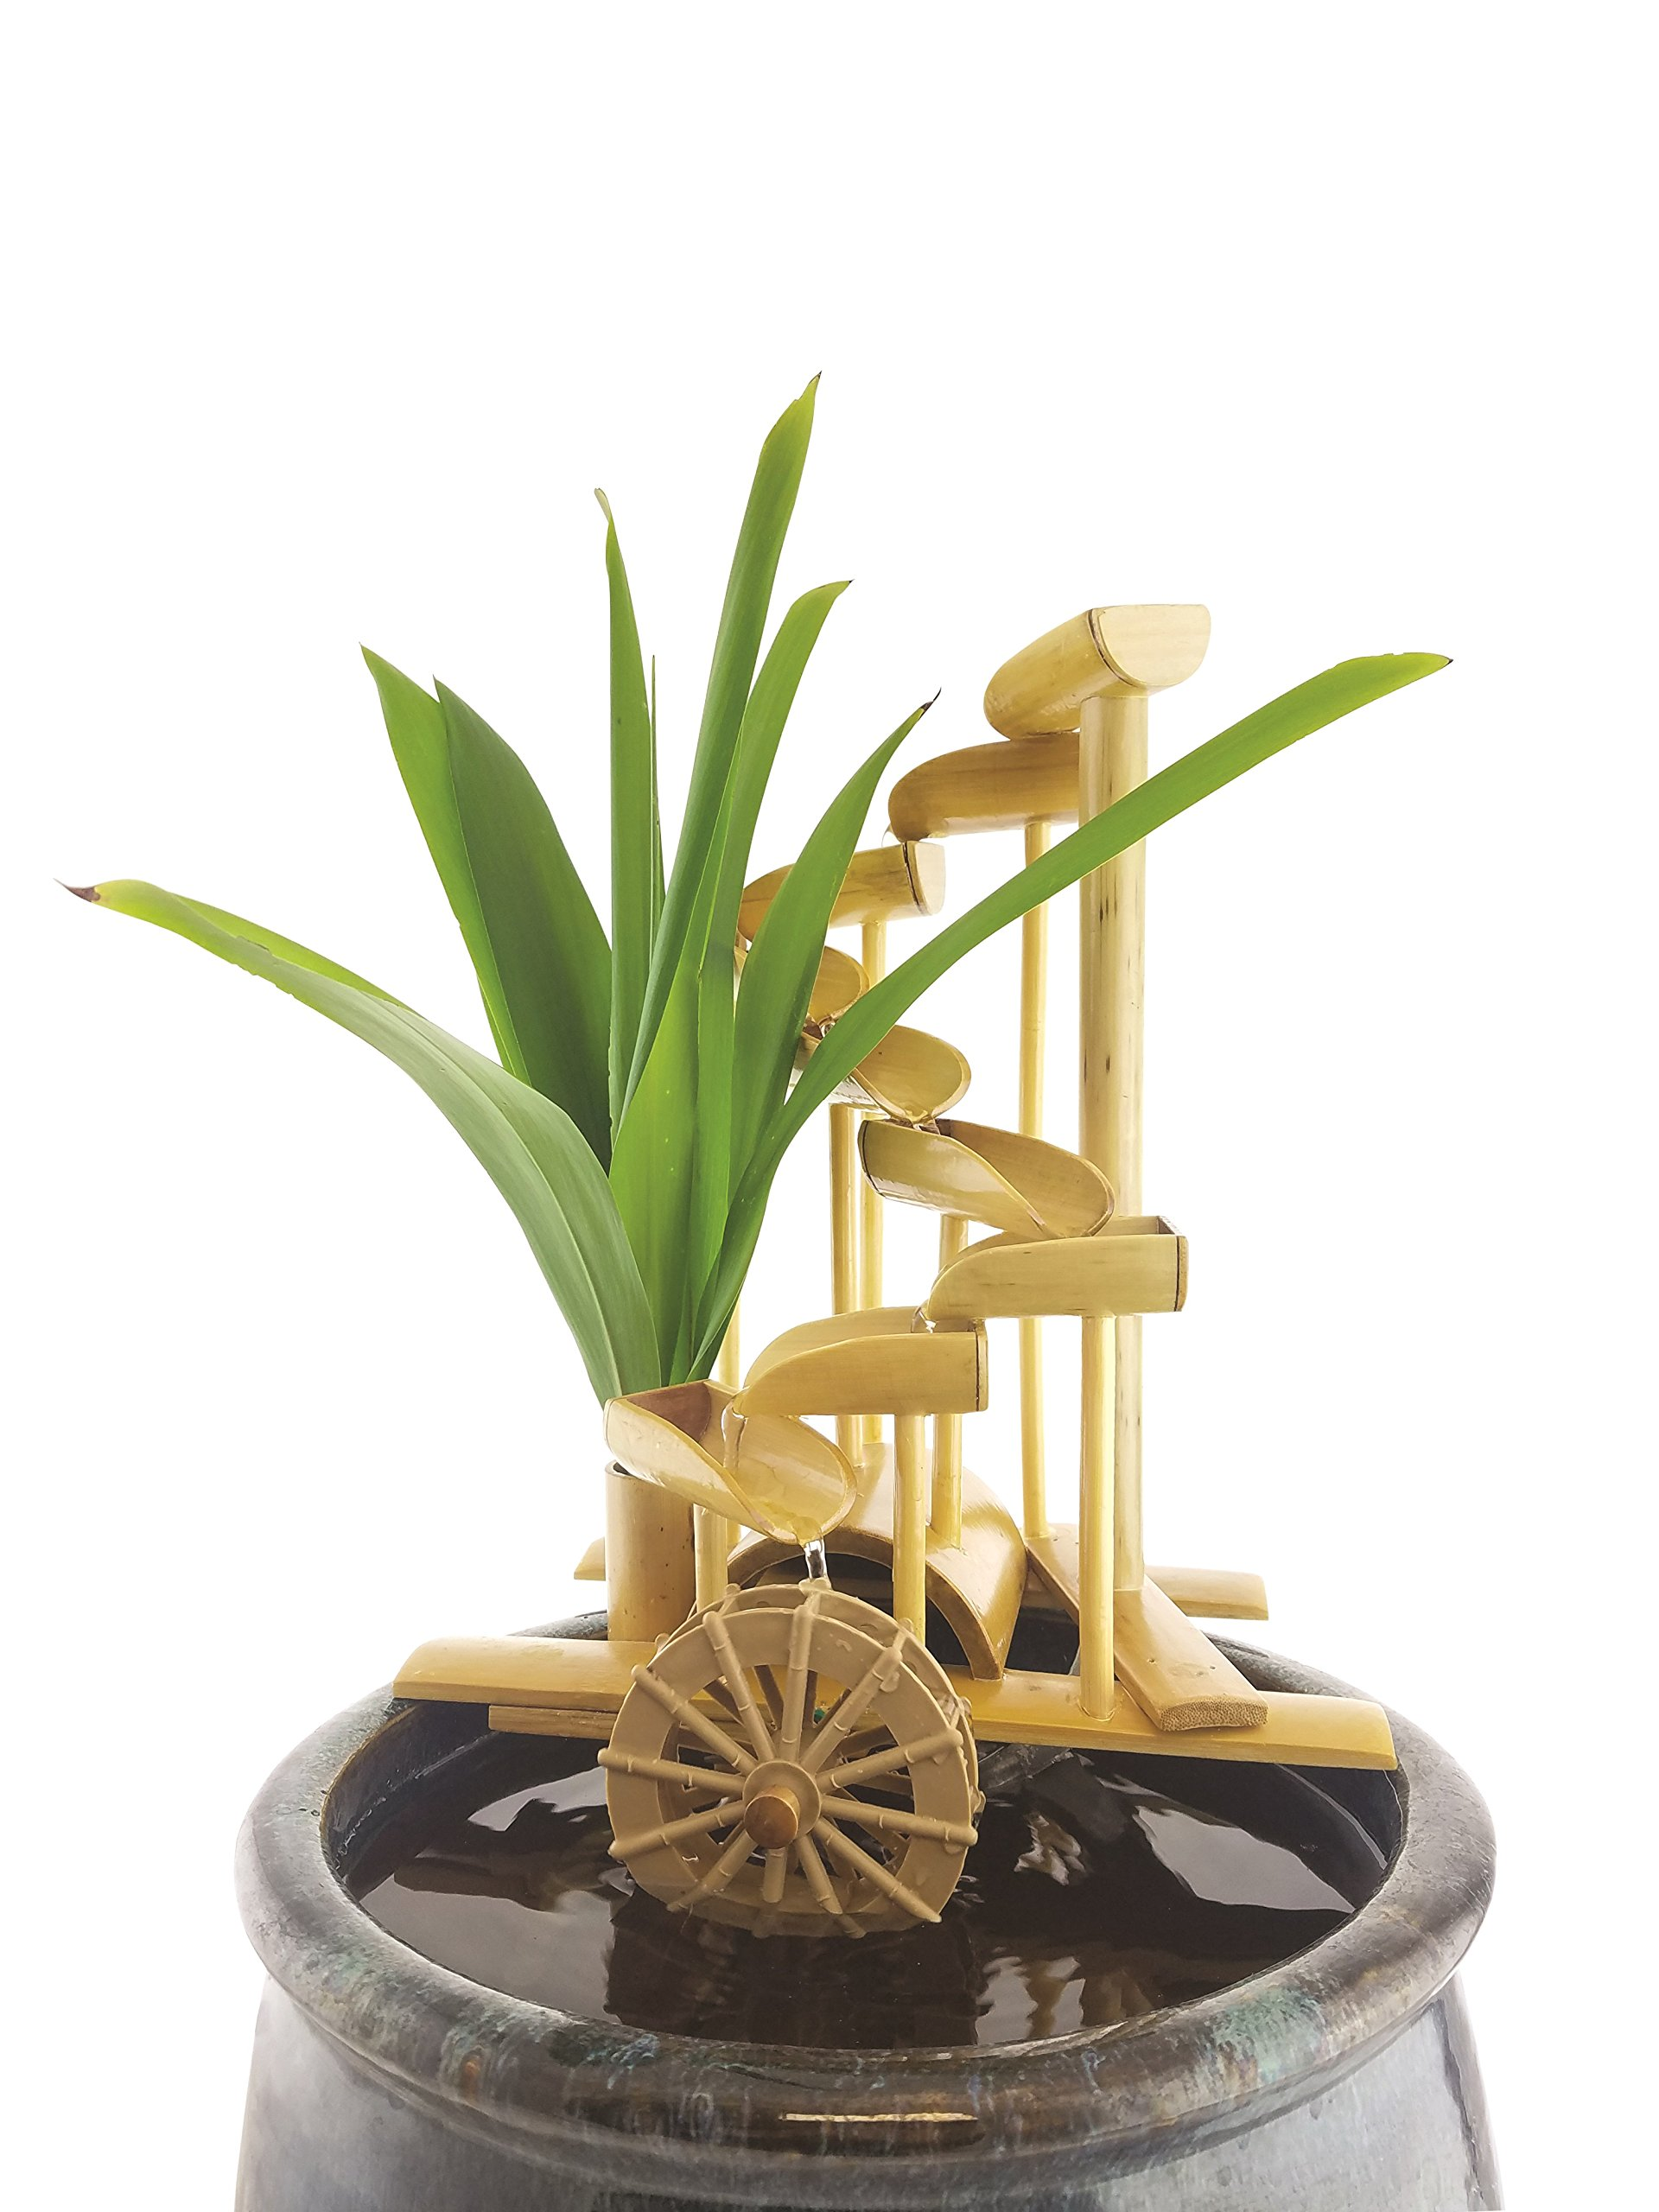 Lifegard Aquatics R440856 Bamboo Money Fountain-Complete with Pump and Tubing, 12'', Brown